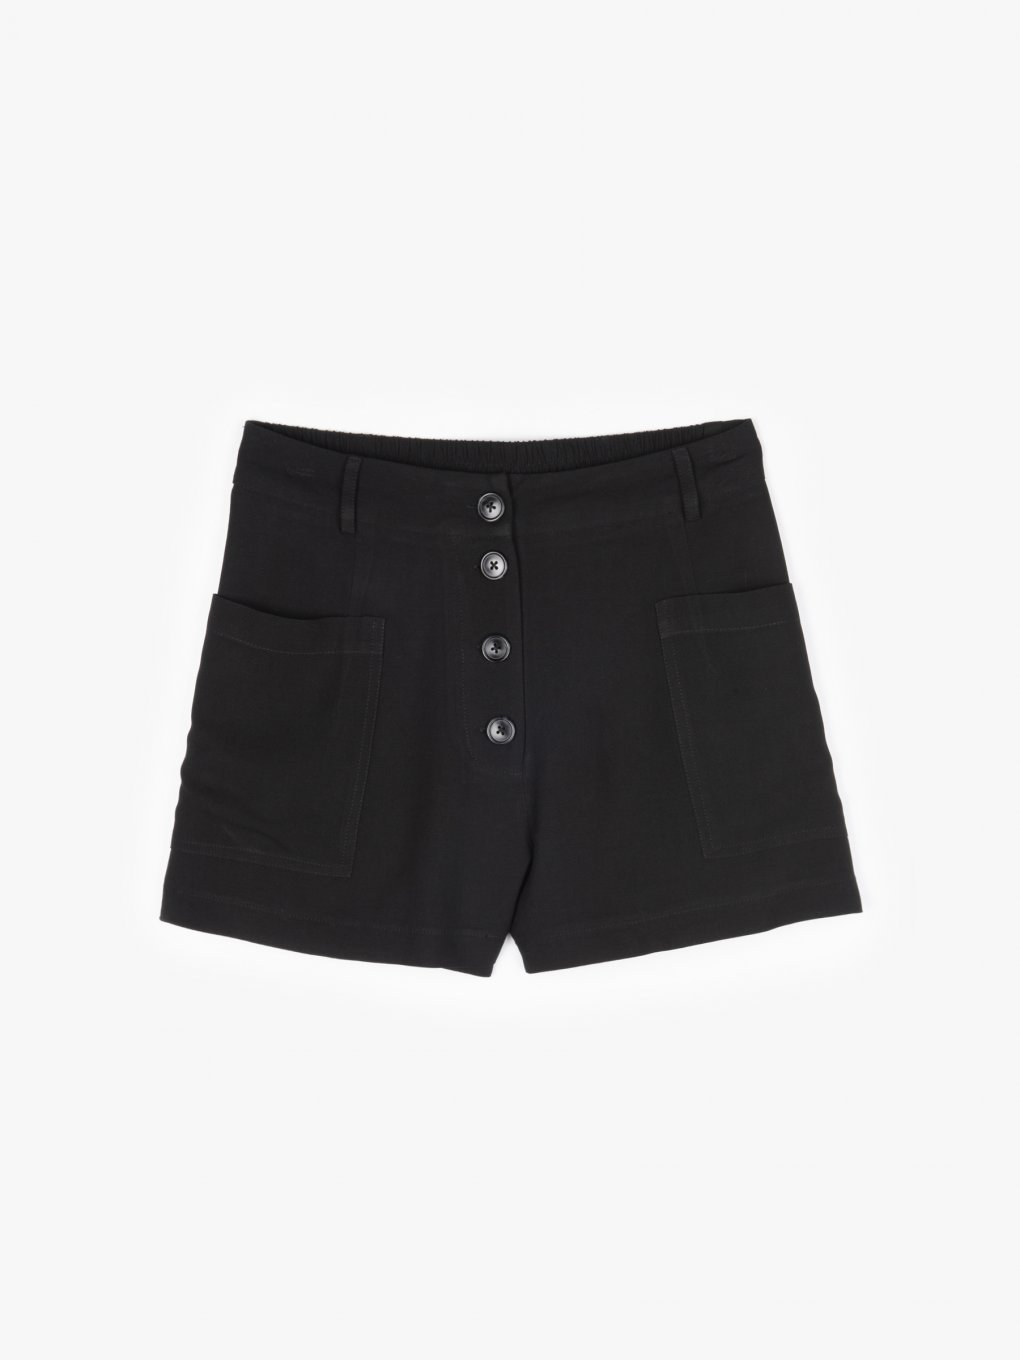 Shorts with pockets